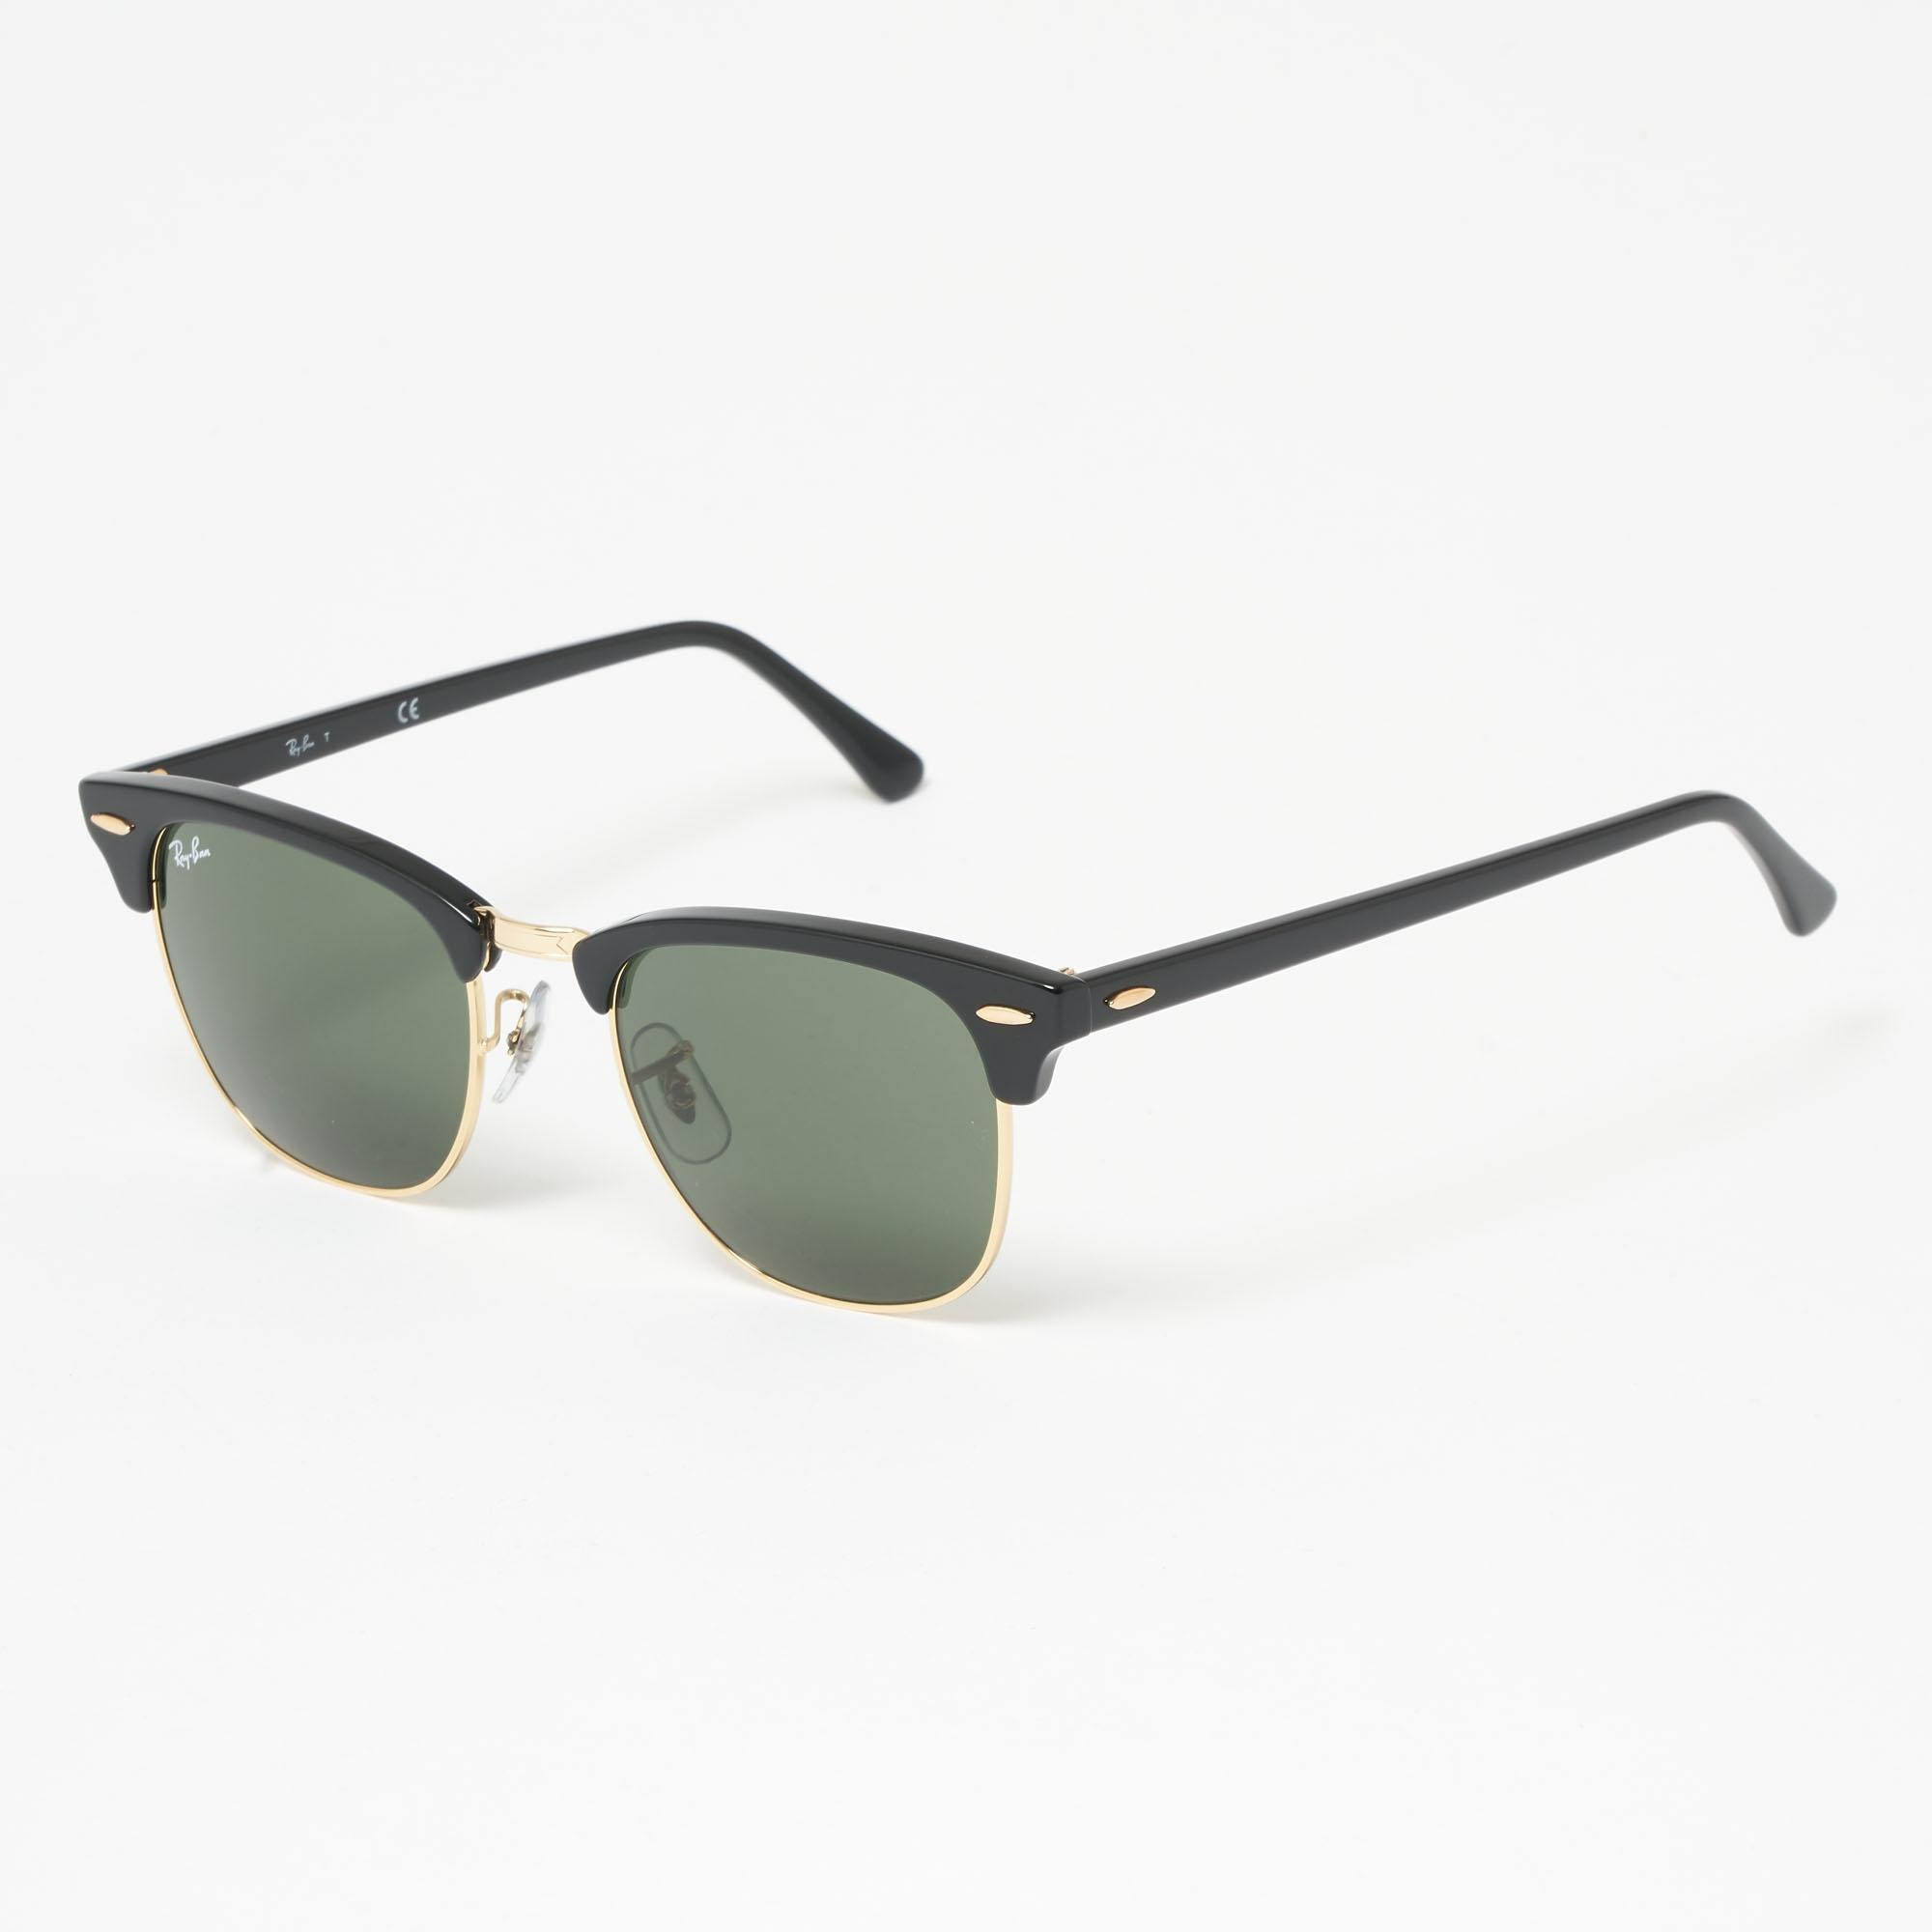 451a5b631a Ray-Ban. Women s Clubround Classic Sunglasses - Green Classic G-15 Lenses